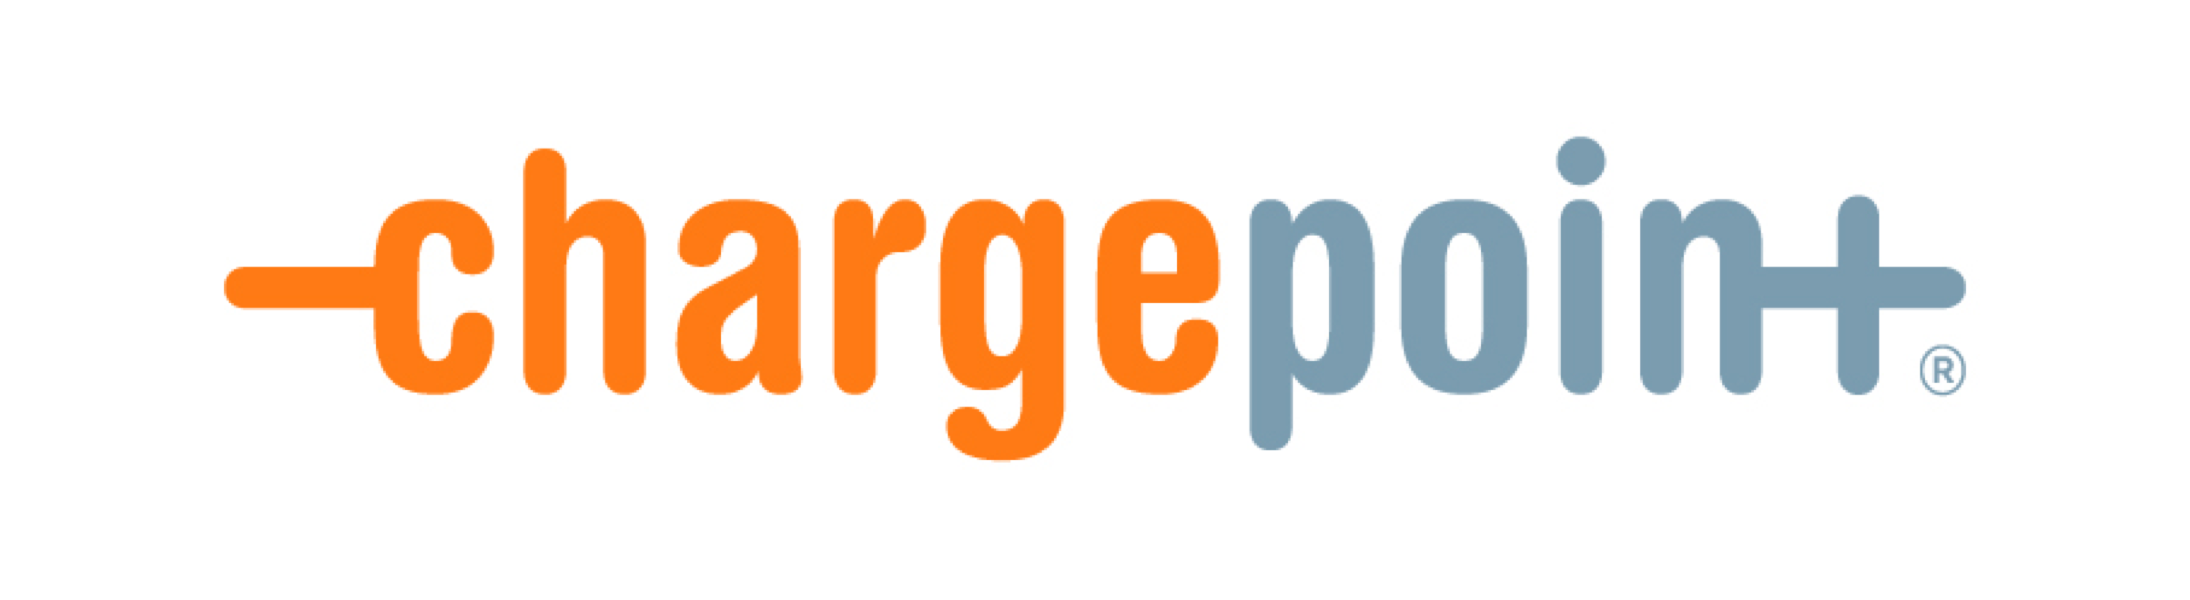 ChargePointLogo